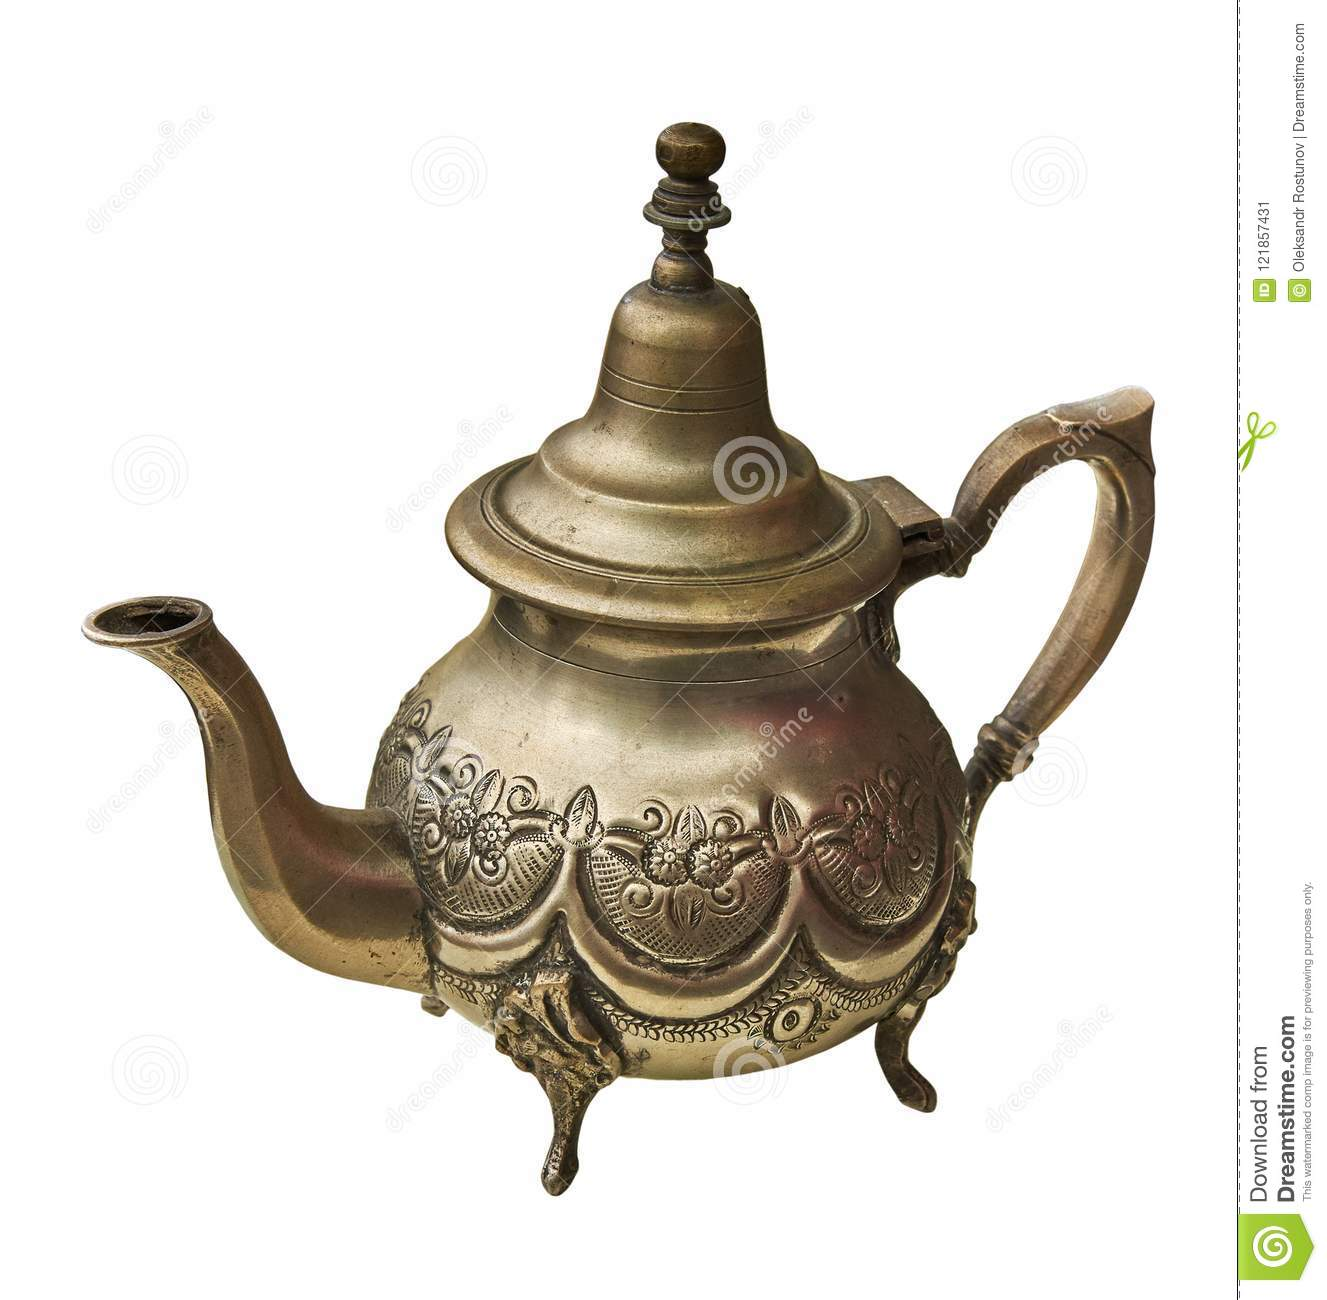 Making Tea In A Teapot Old Brass Teapot For Tea Making Stock Image Image Of